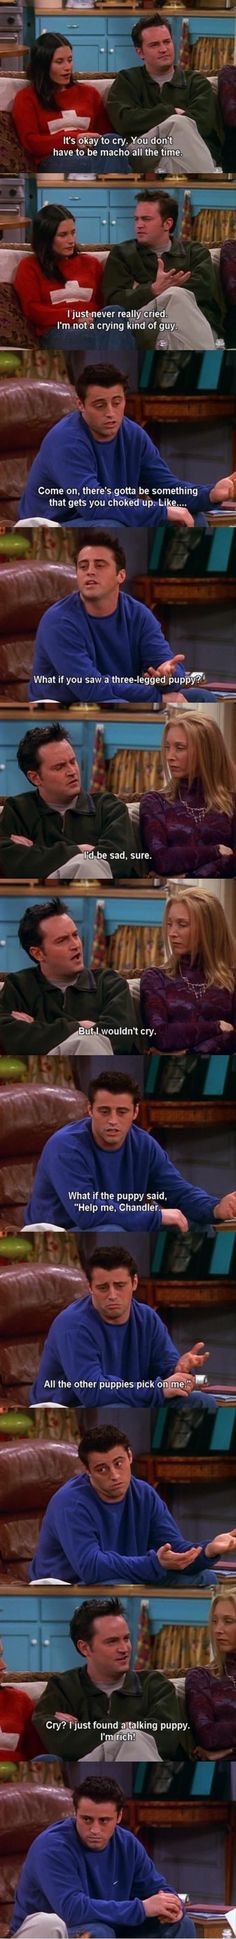 Oh, Chandler.< every single time someone says Chandler, I hear Janice in my head :)